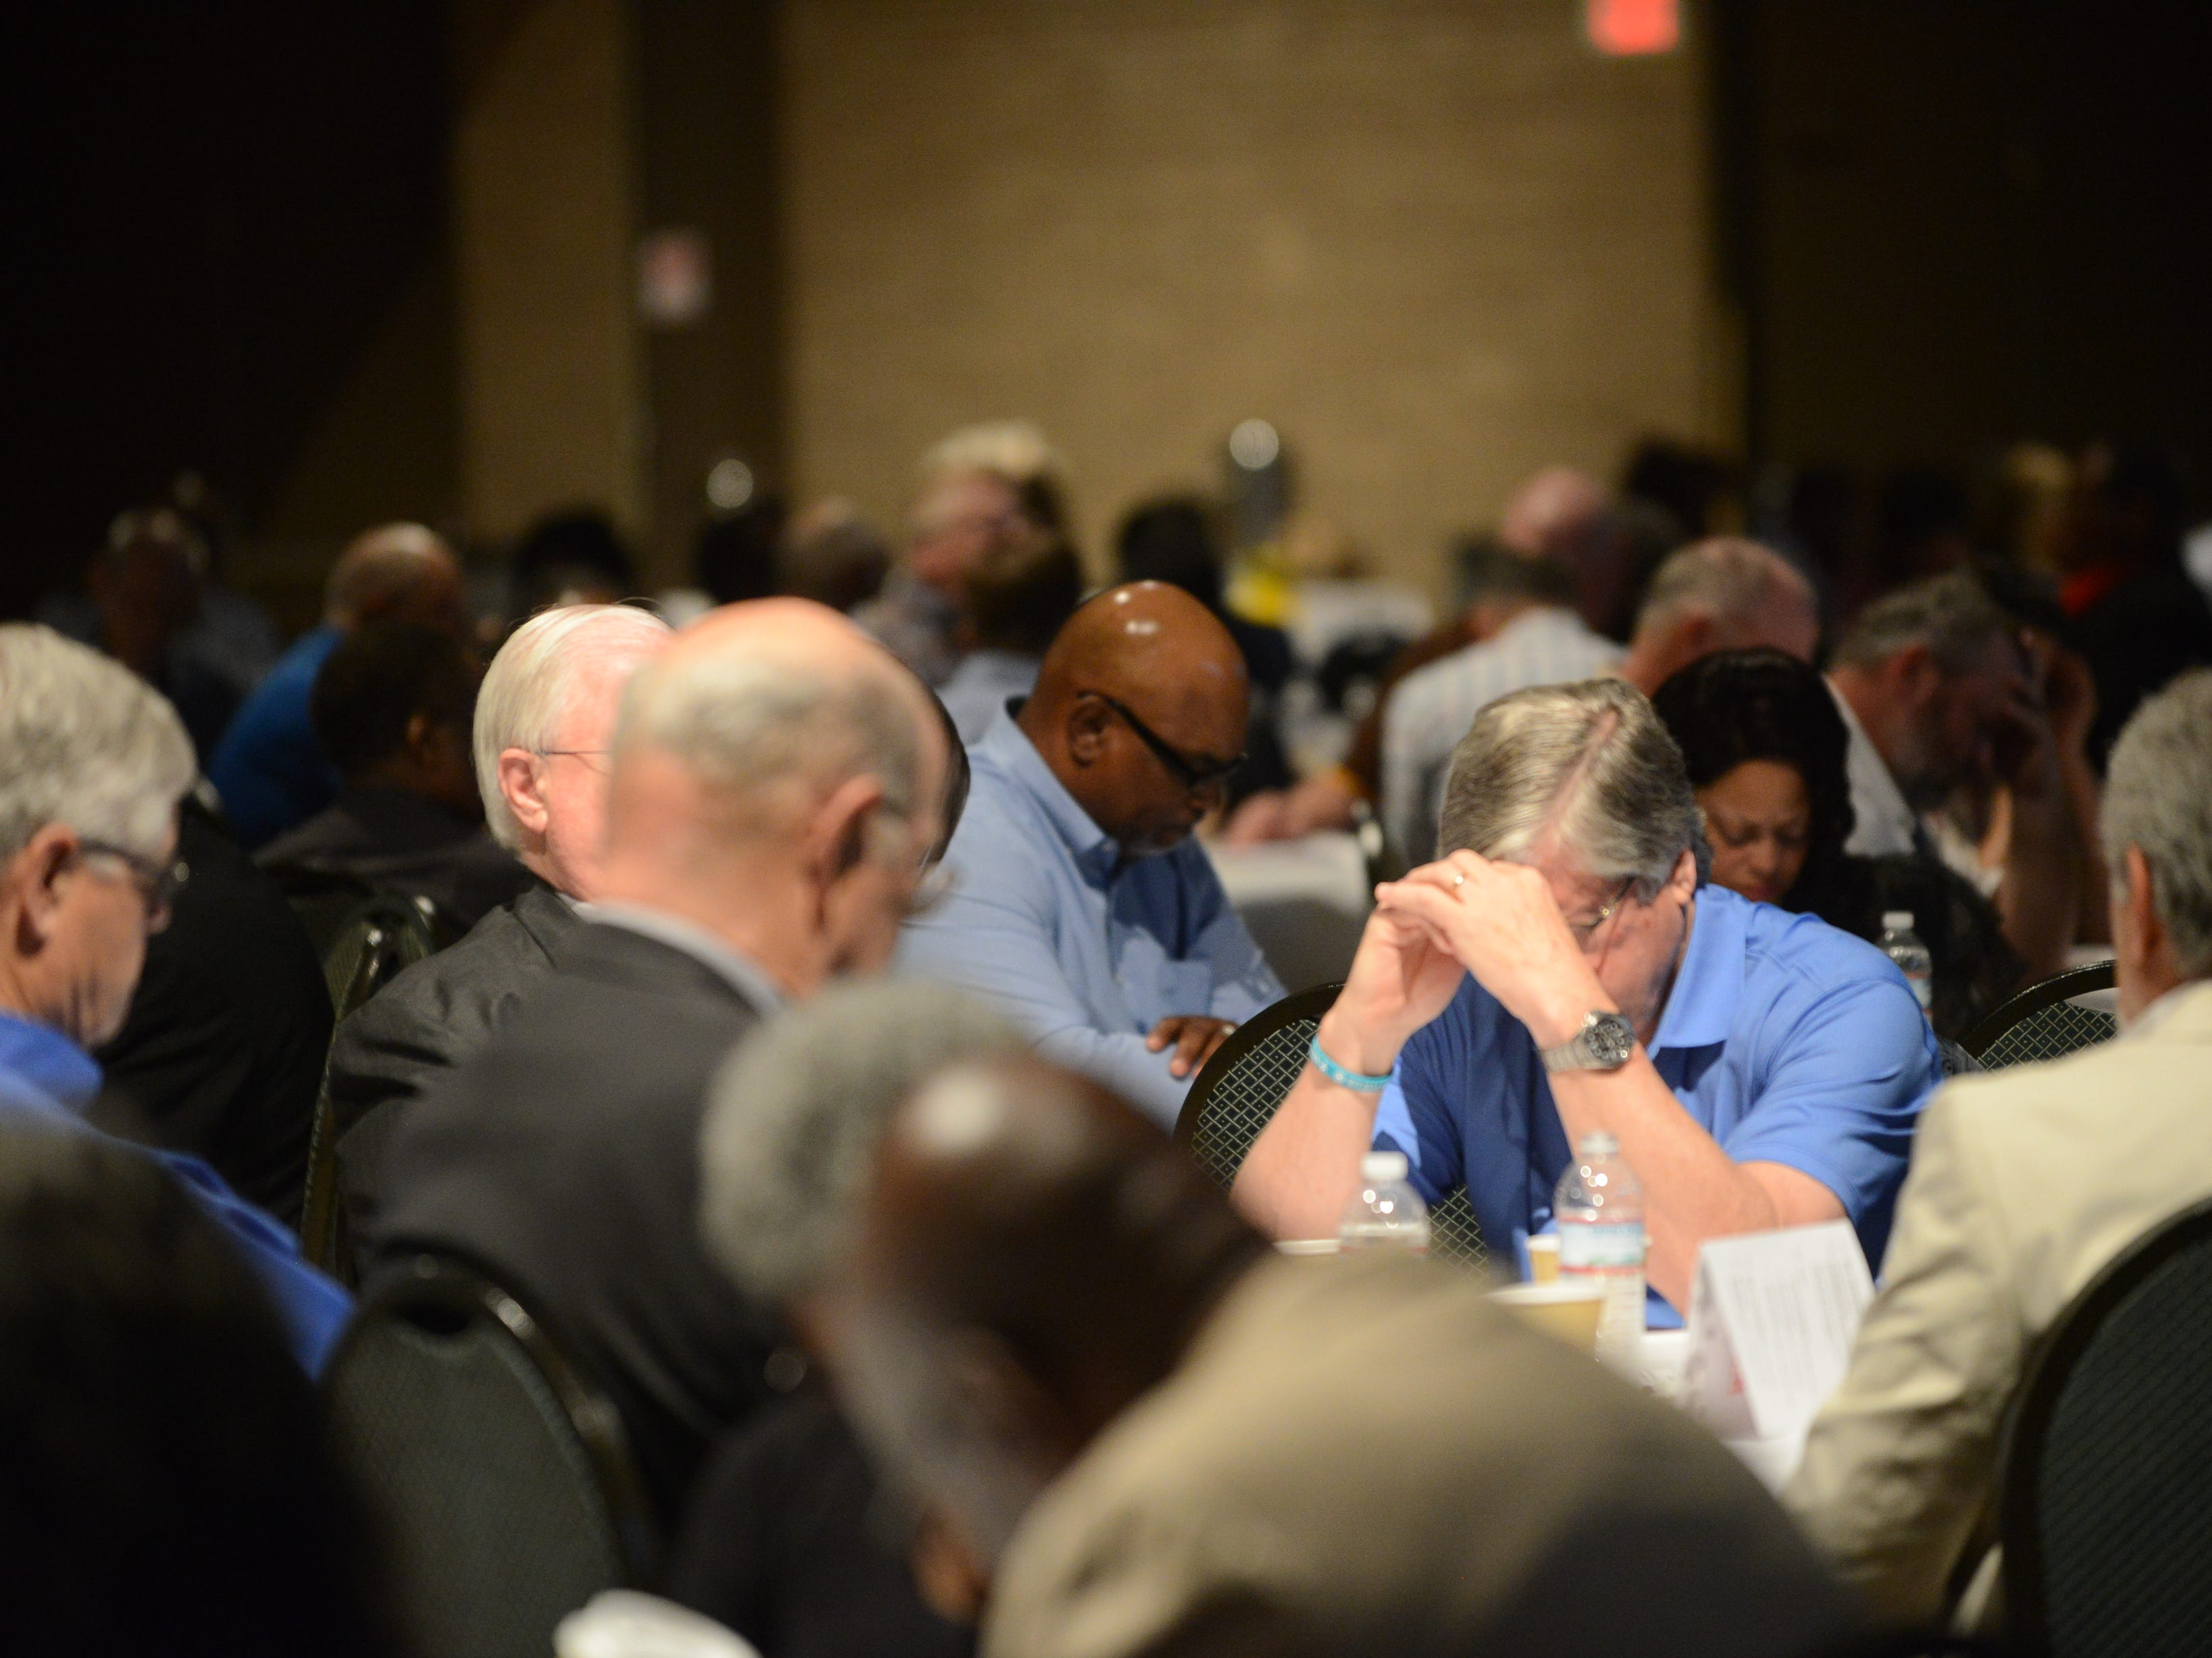 Jackson Area Ministerial Association hosted the Mayor's Prayer Breakfast to celebrate National Day of Prayer on May 2 in Jackson, Tenn.